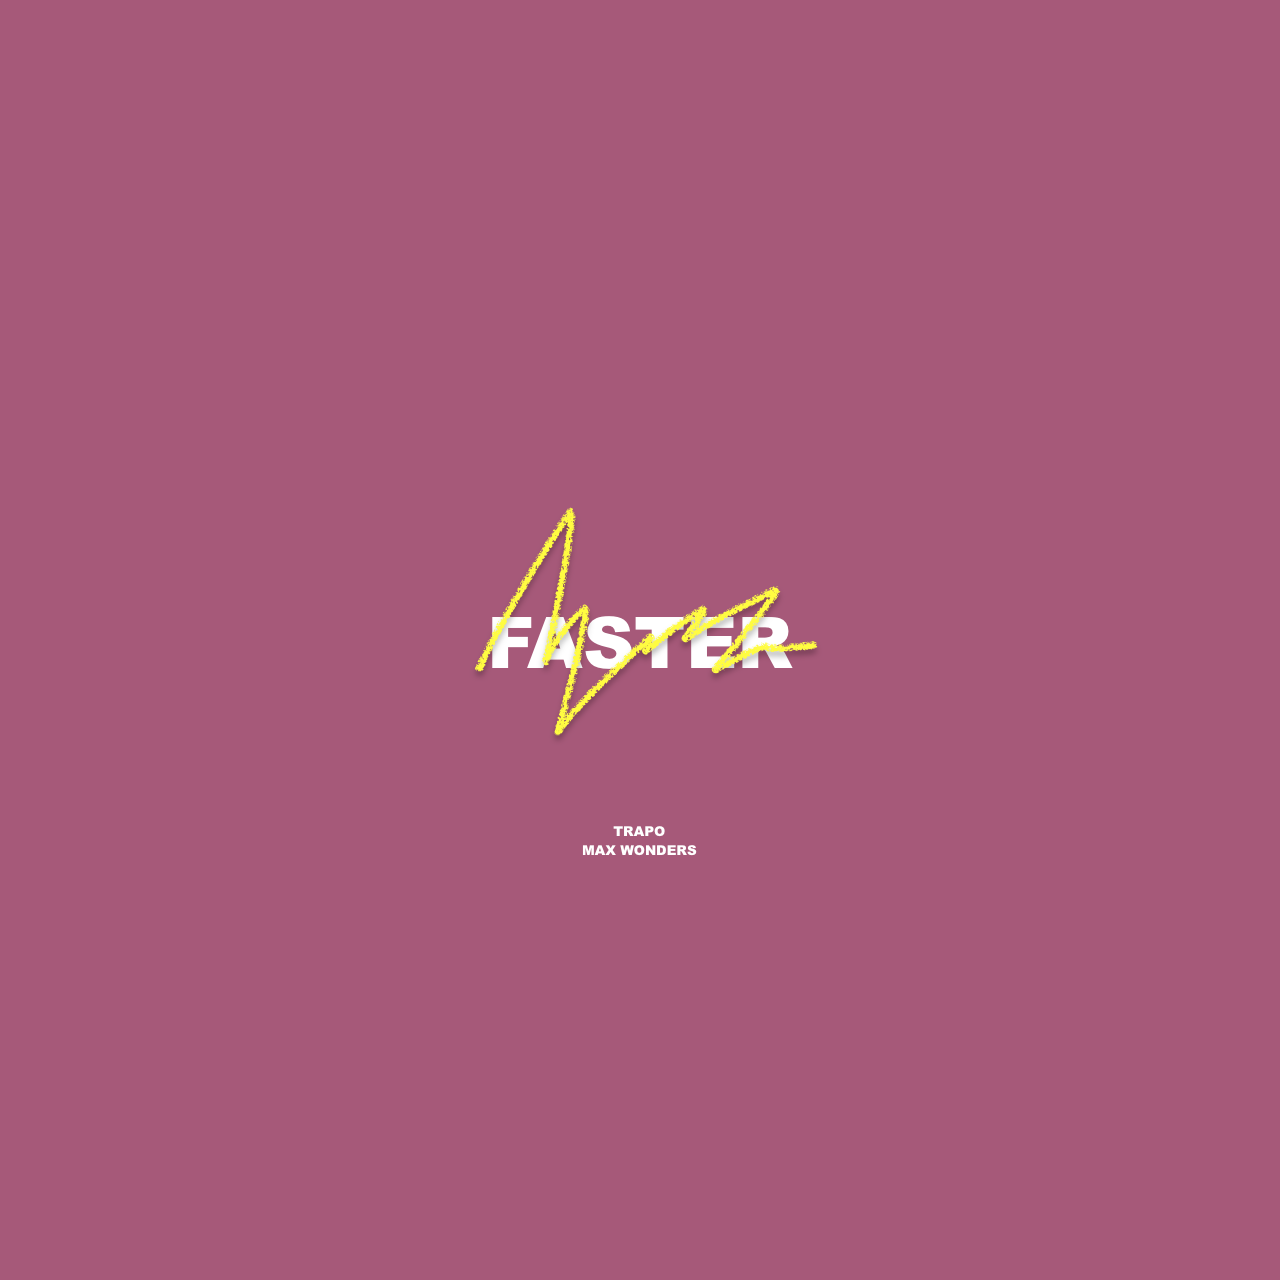 FASTER COVER 2